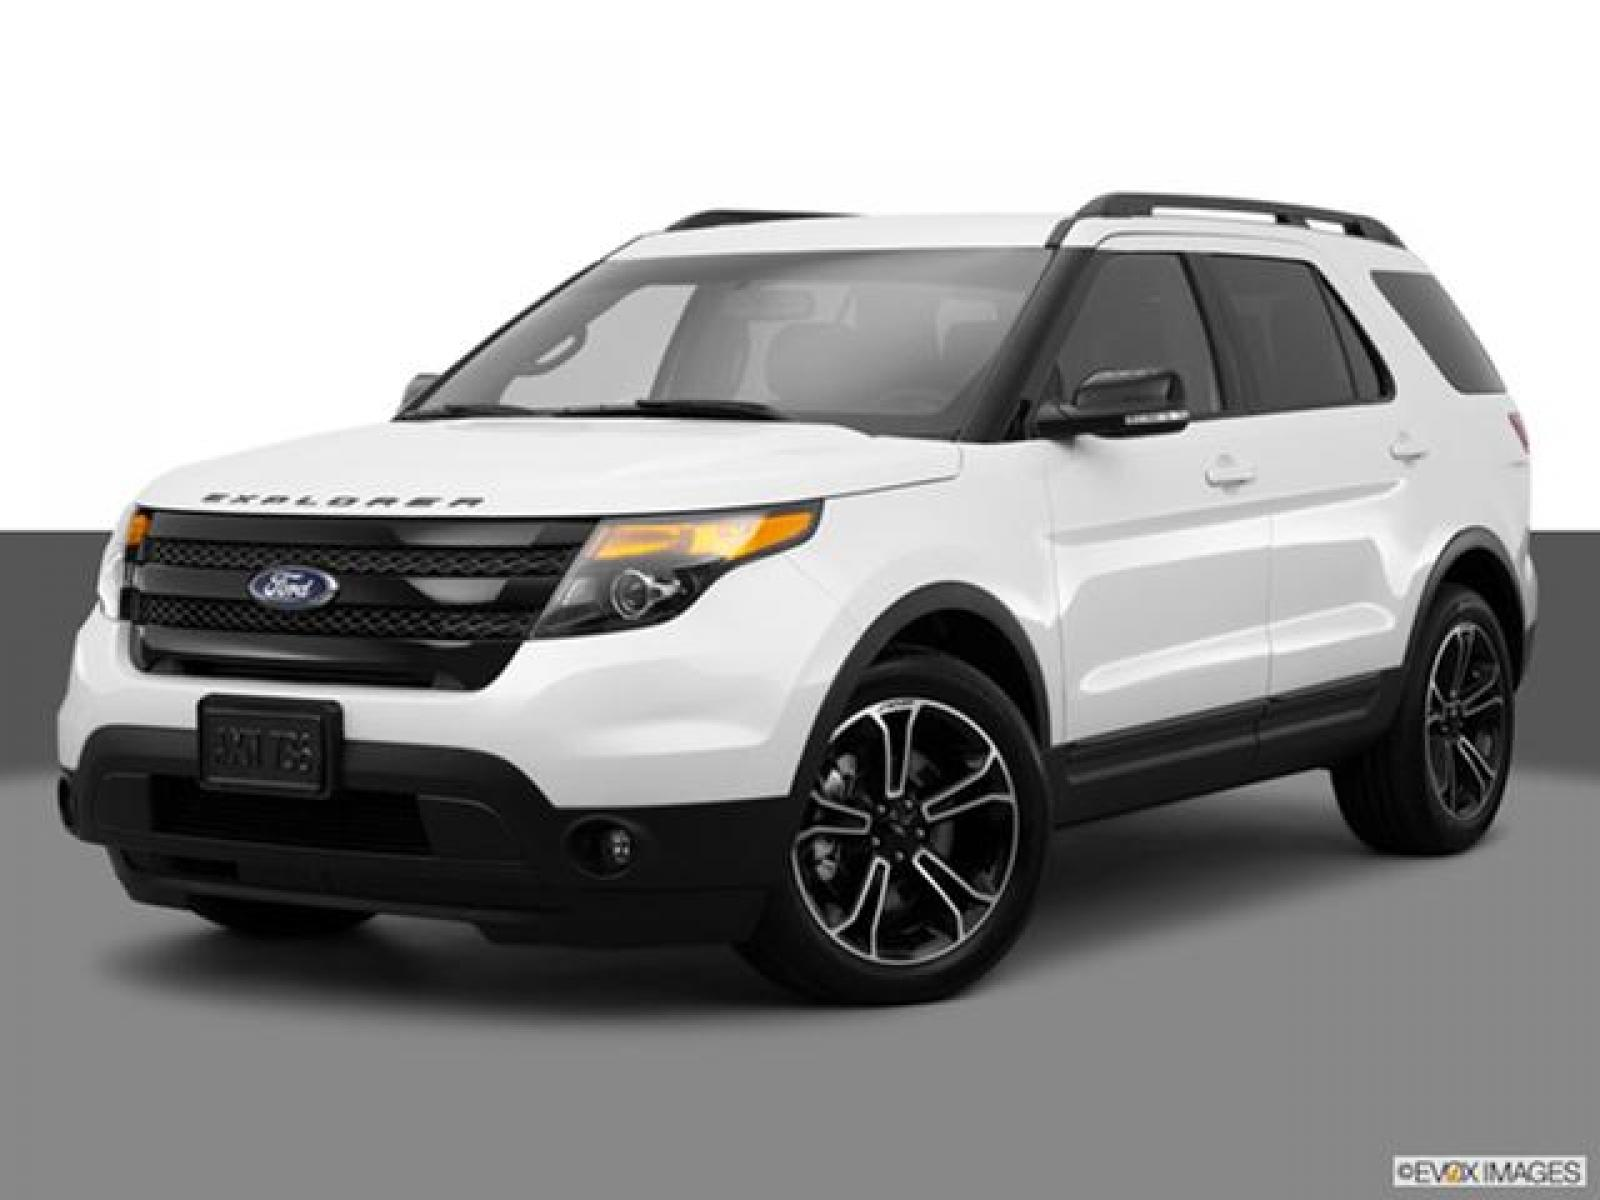 2015 ford explorer information and photos zombiedrive. Black Bedroom Furniture Sets. Home Design Ideas